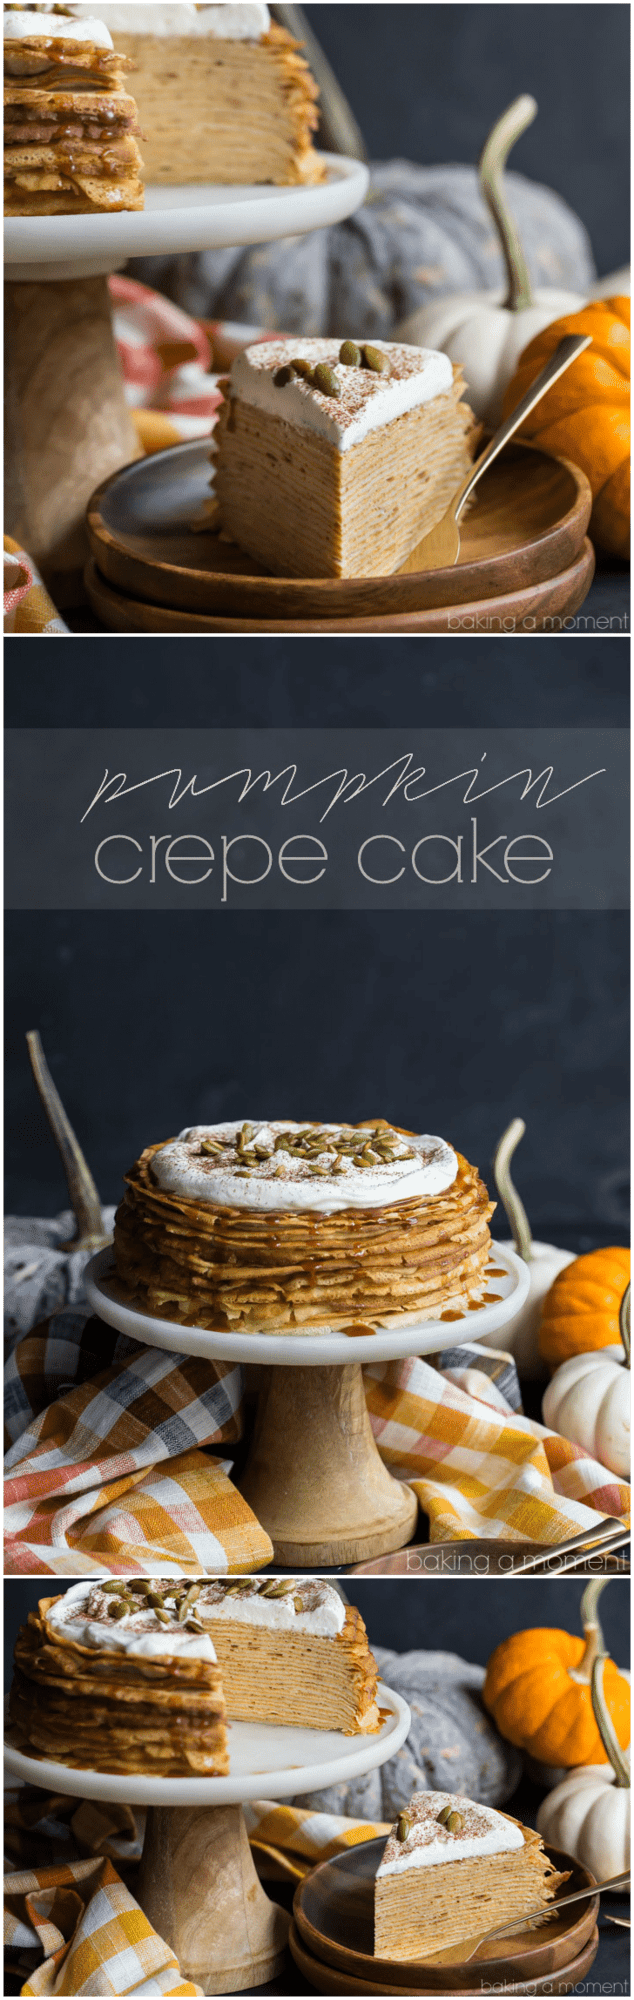 Pumpkin Crepe Cake: layer upon layer of lacy crepes, filled with a fluffy, cinnamon-spiced pumpkin pastry cream. The salted caramel and pepita garnish took this completely over-the-top! Definitely making this again for Thanksgiving.